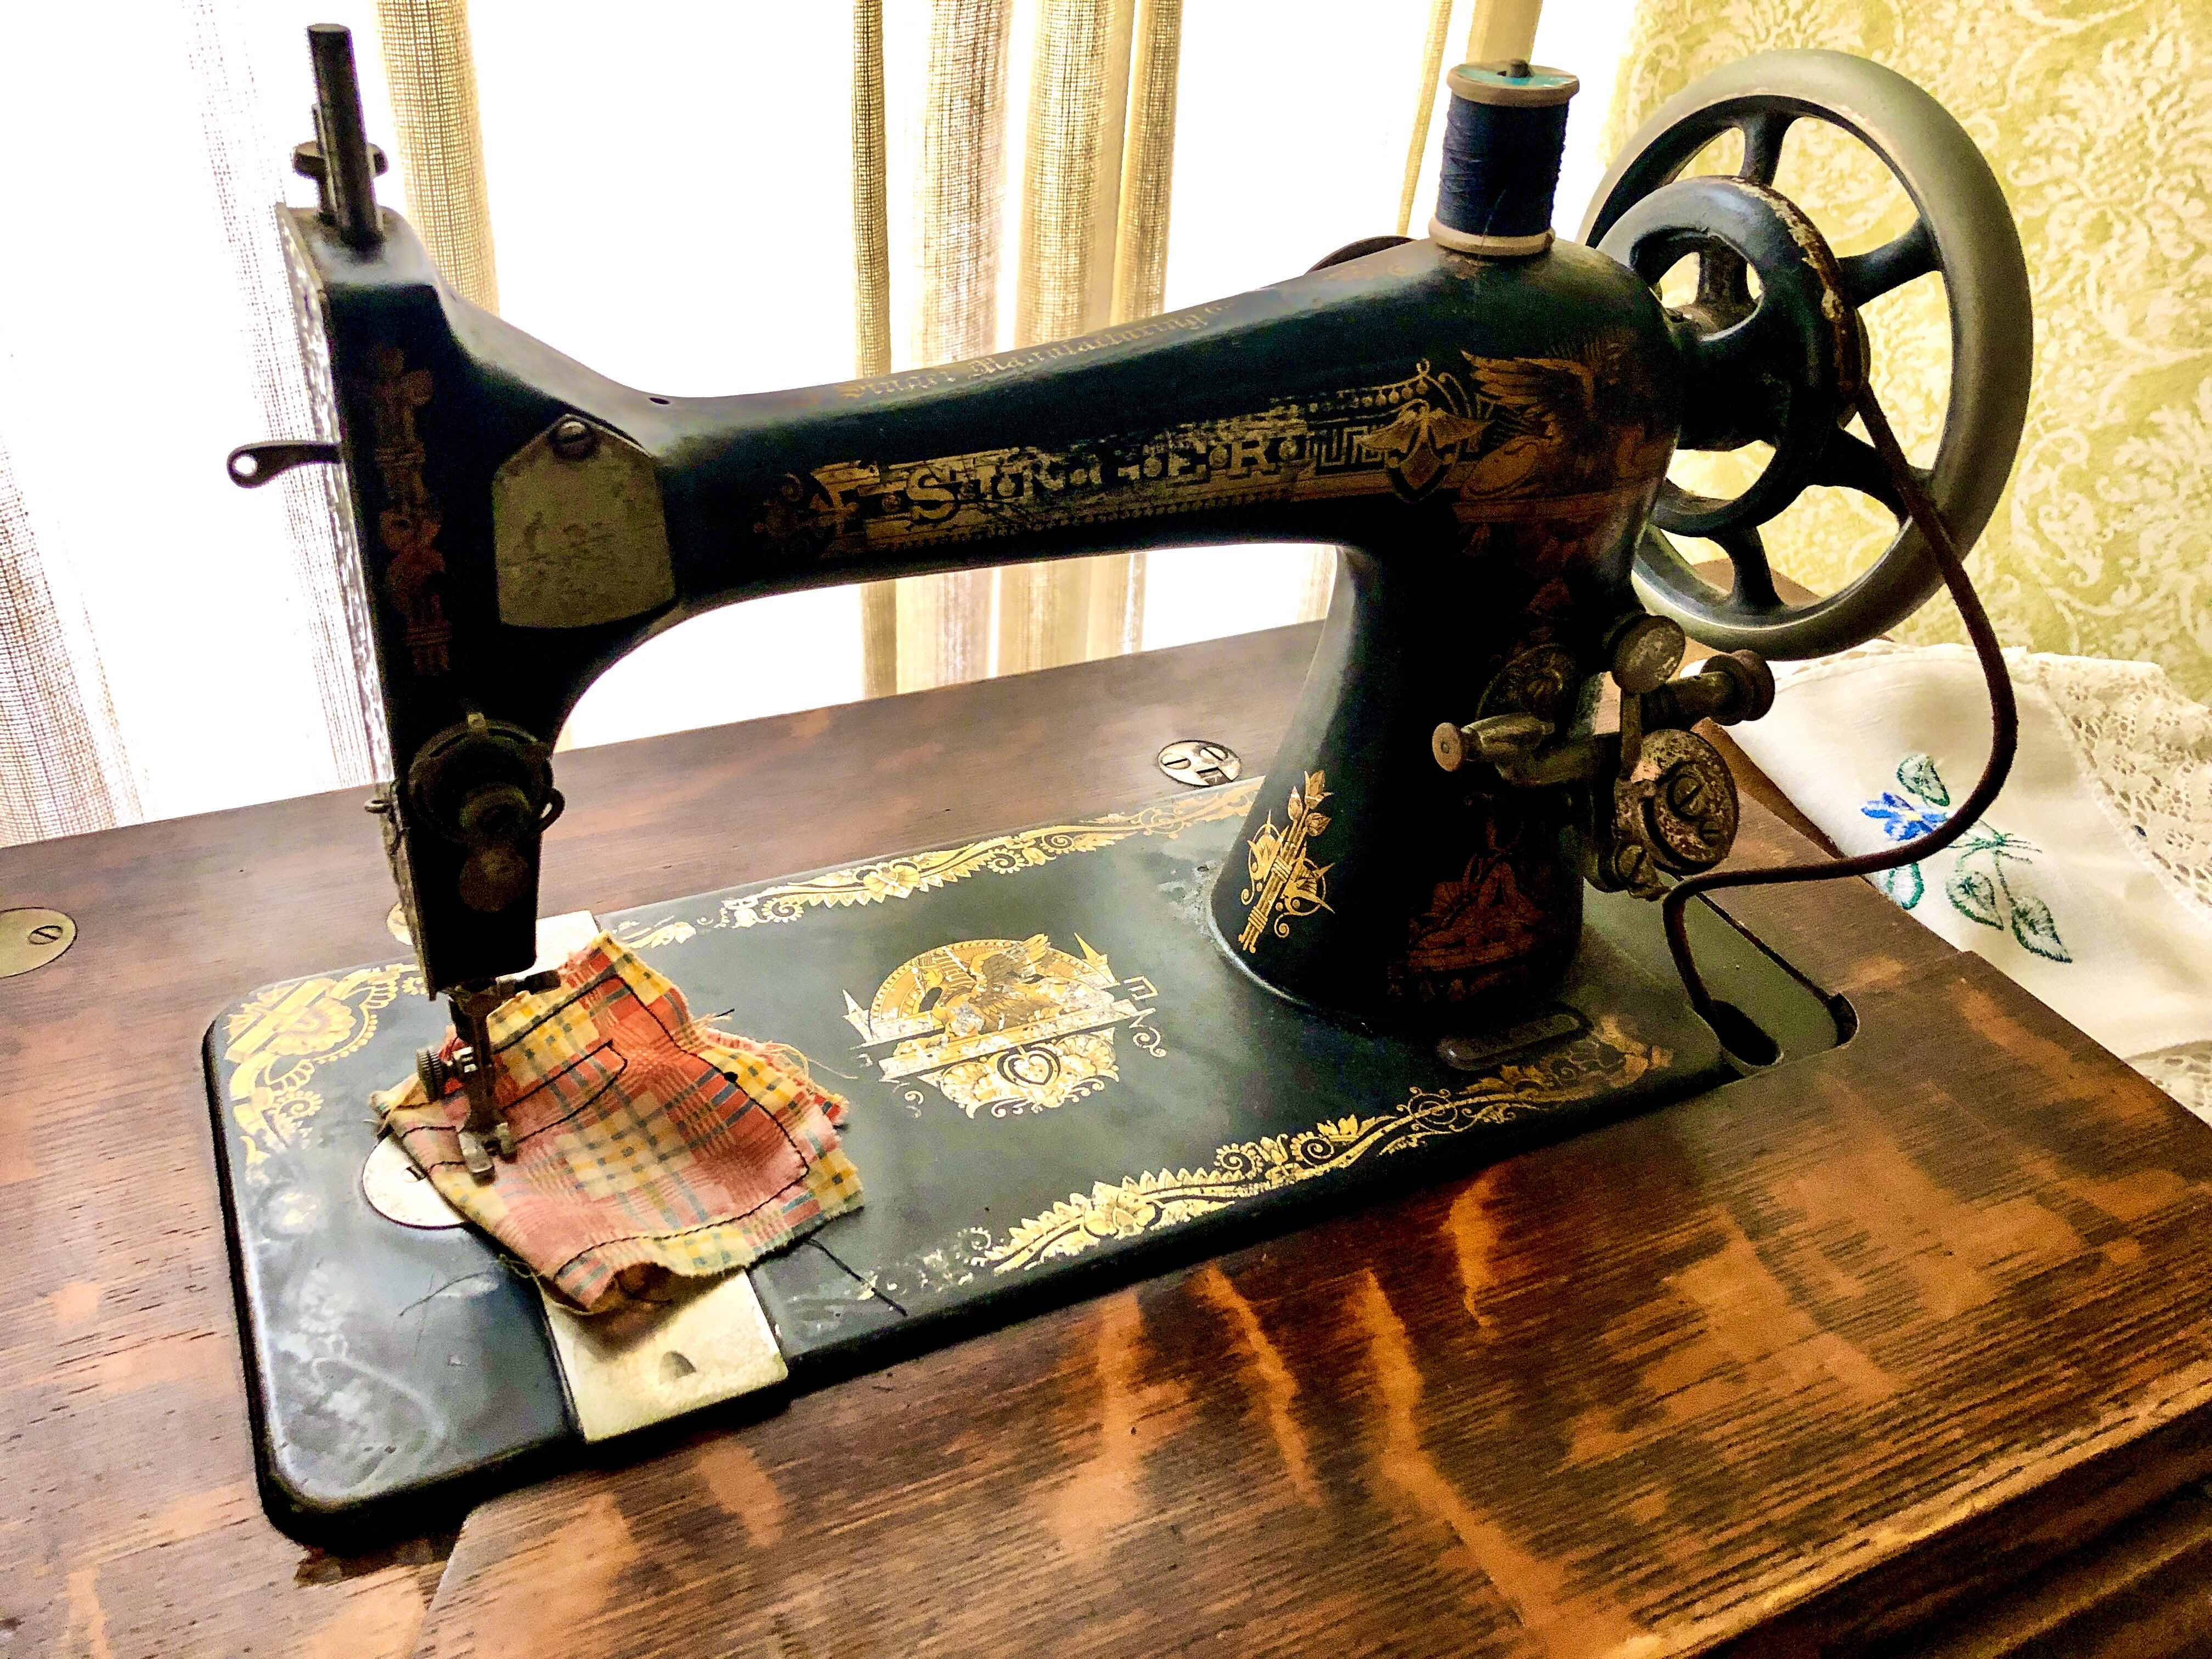 Arne Vainio: My grandmother's sewing machine